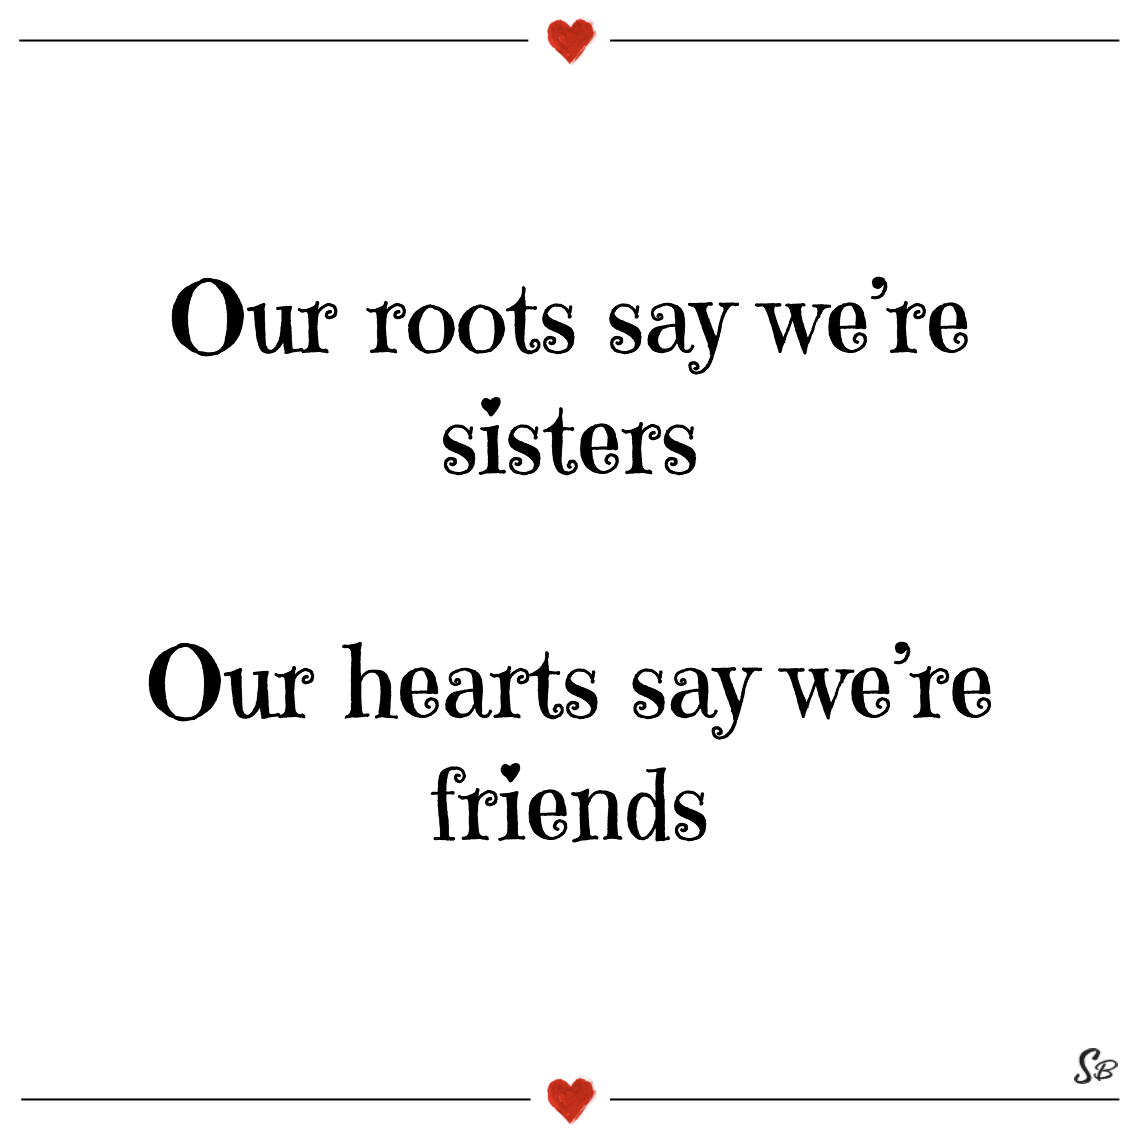 Our roots say we're sisters our hearts say we're friends